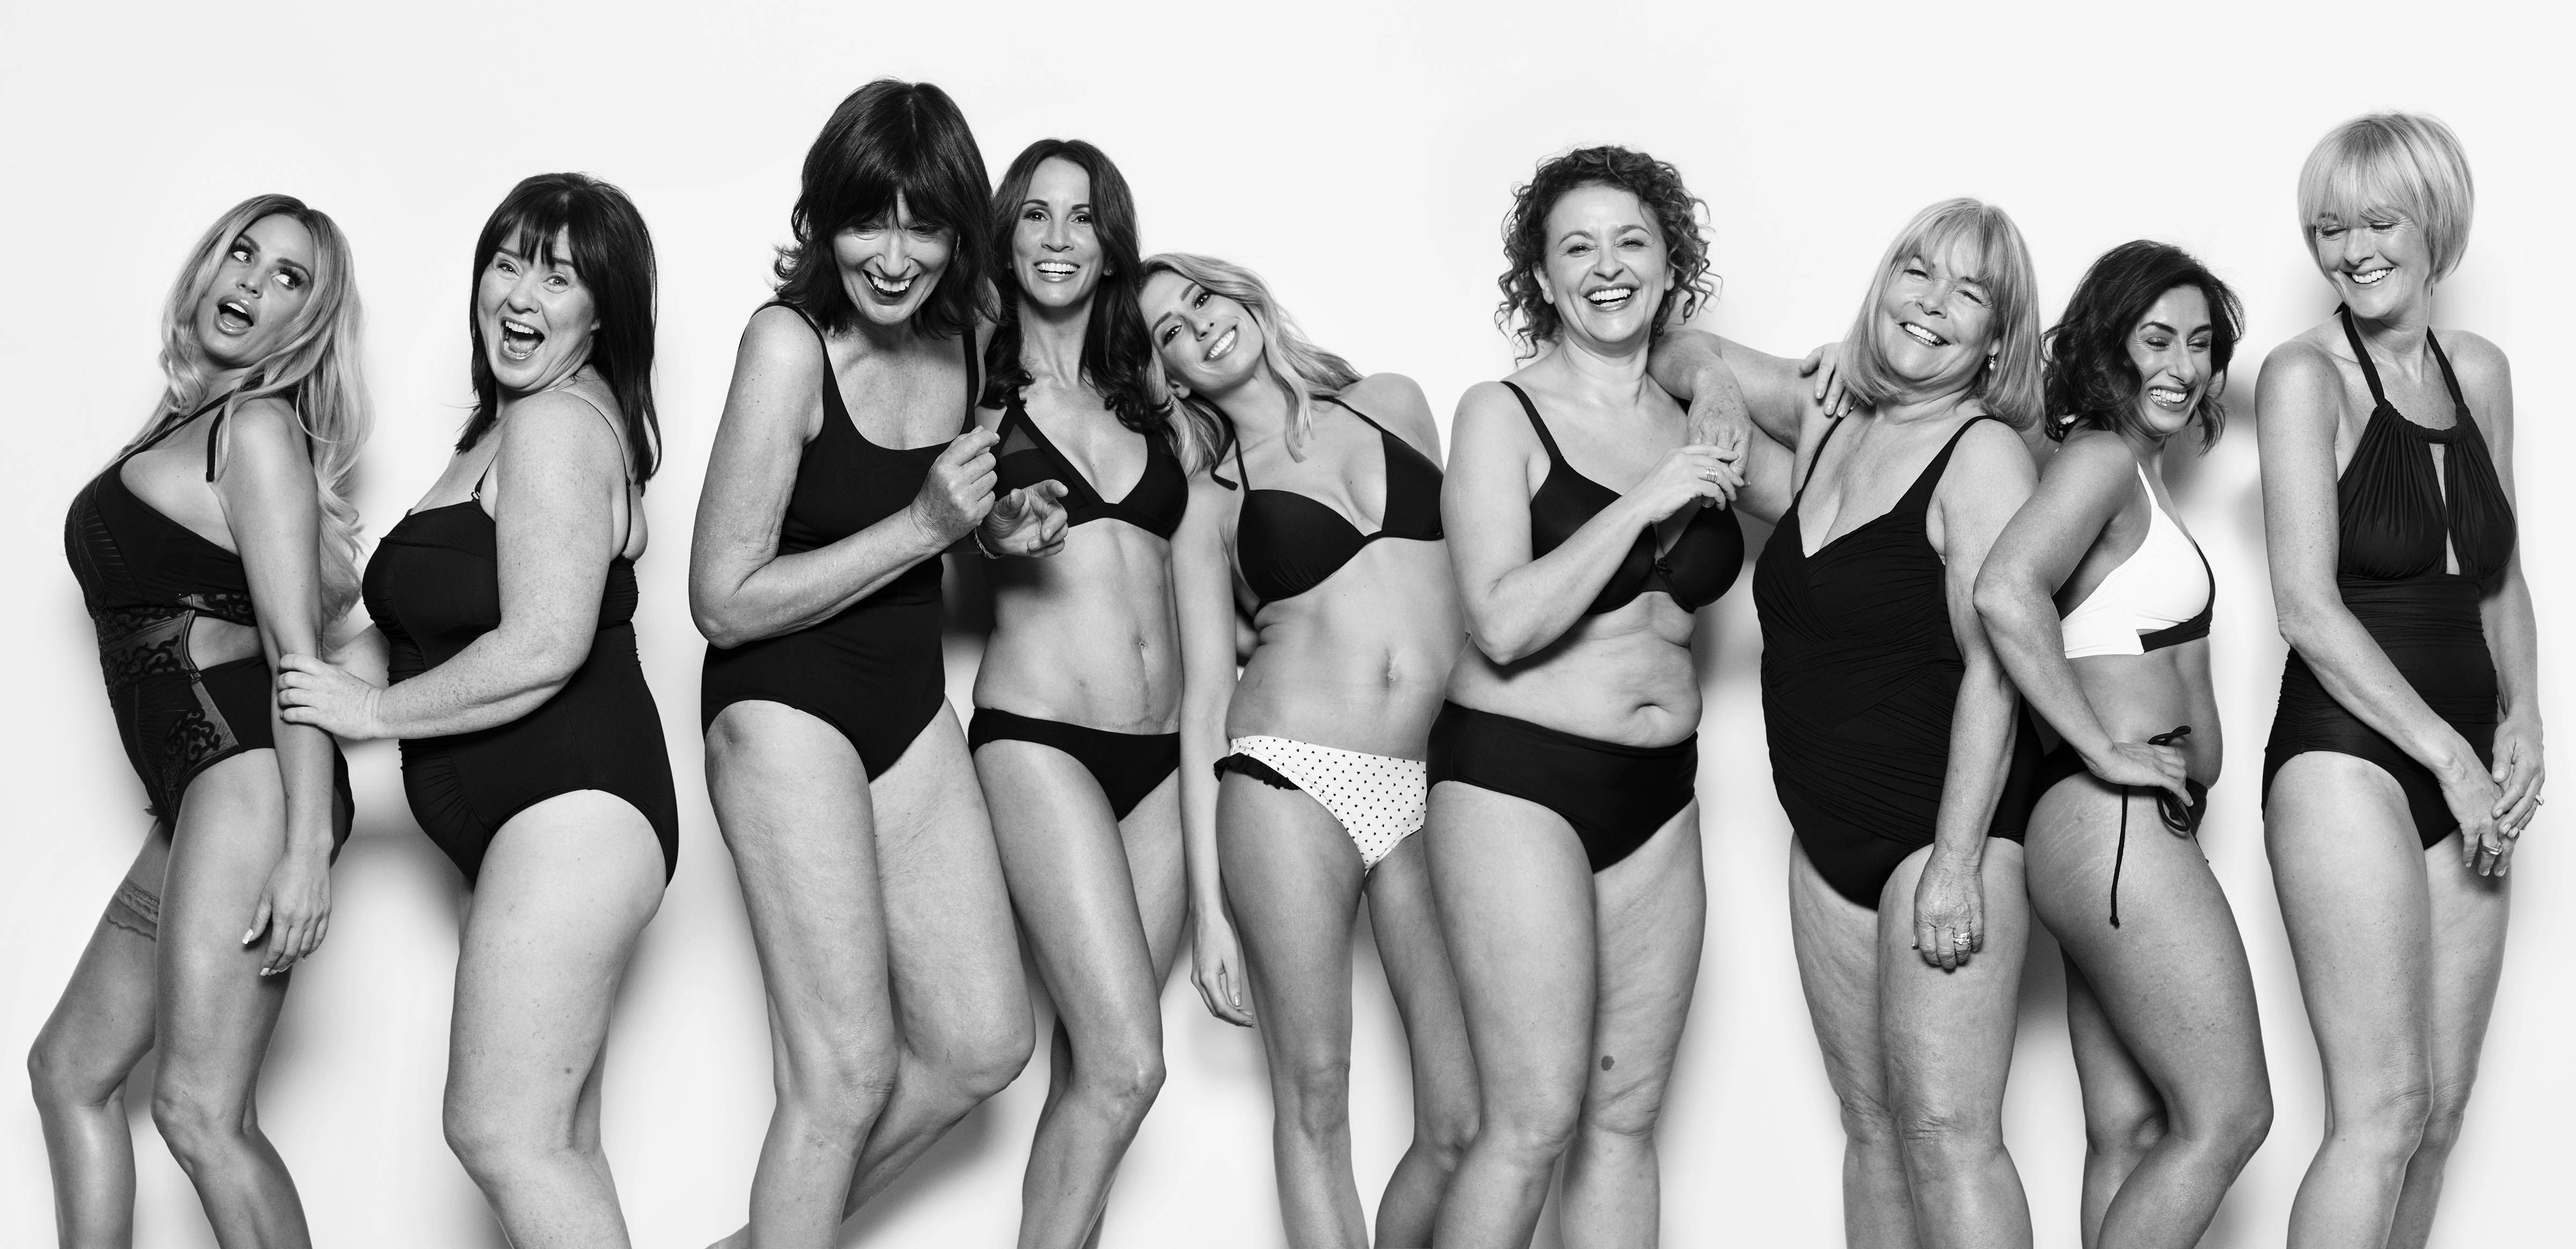 Loose Women strip to their swimwear to show off real bodies and 'stick two fingers up' at air brushing